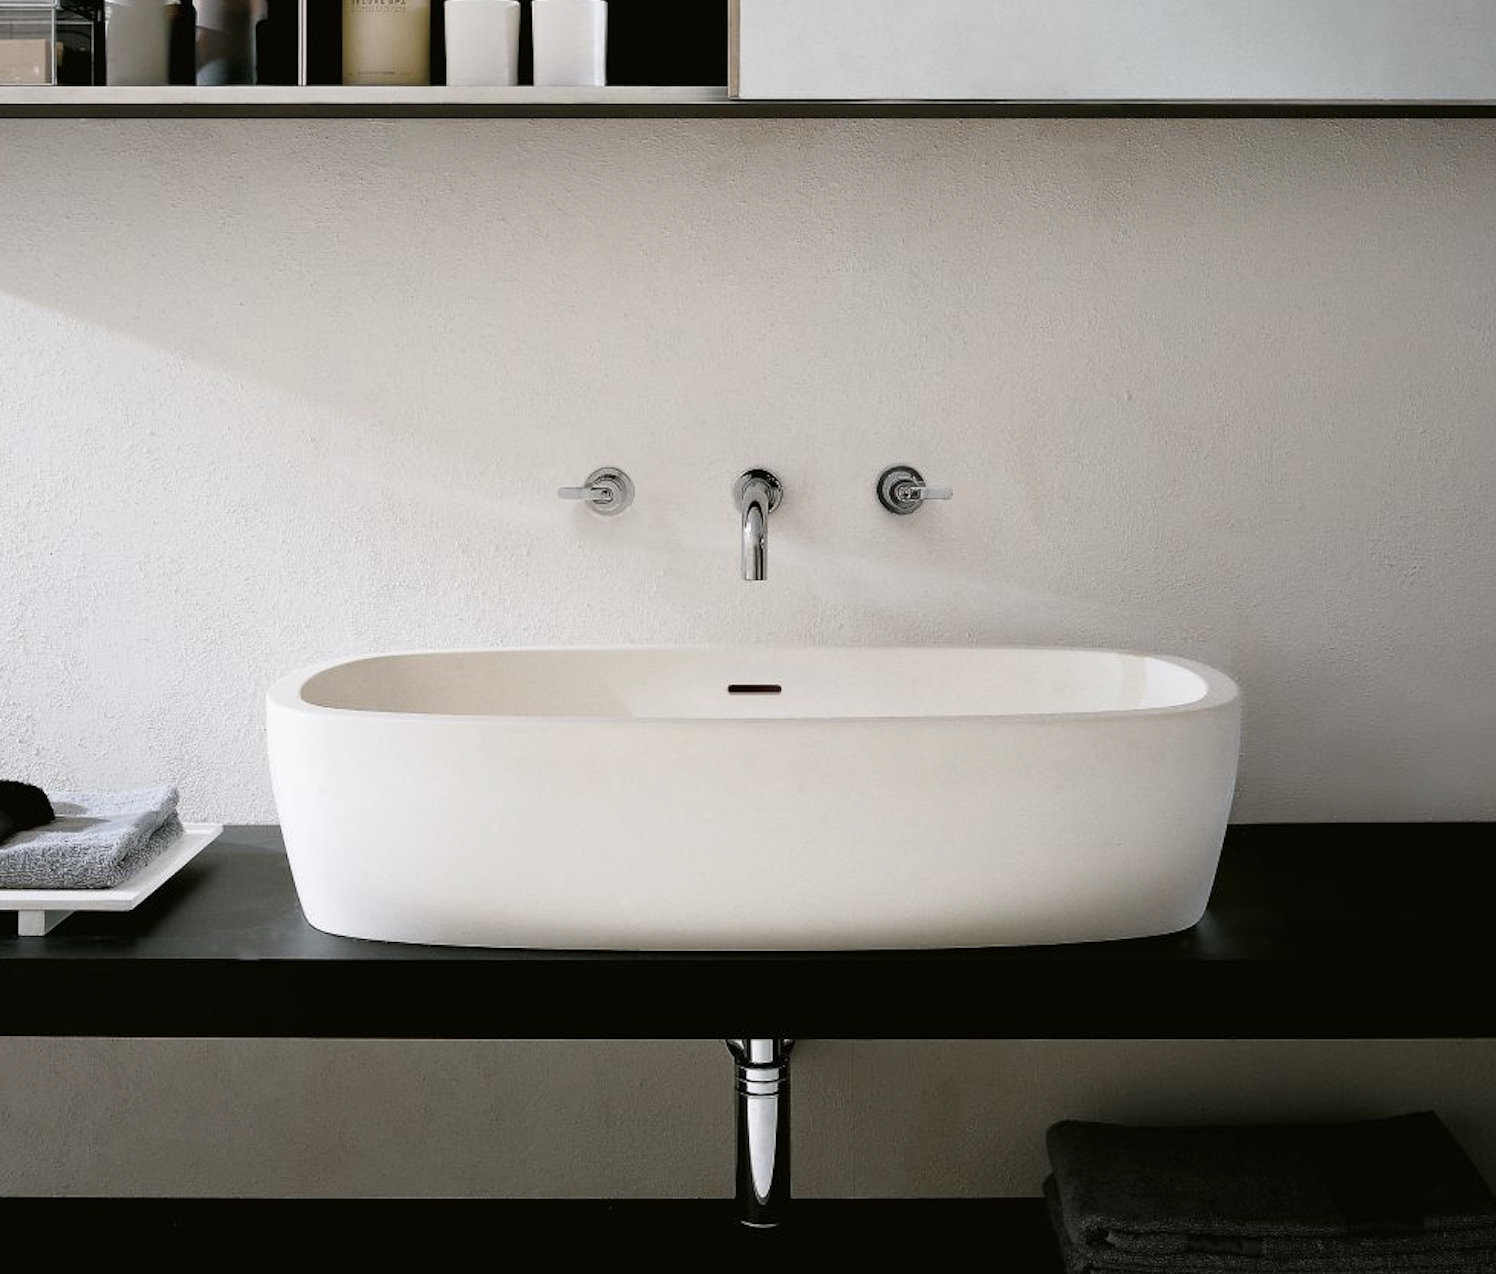 Product Image deep over-counter washbasin